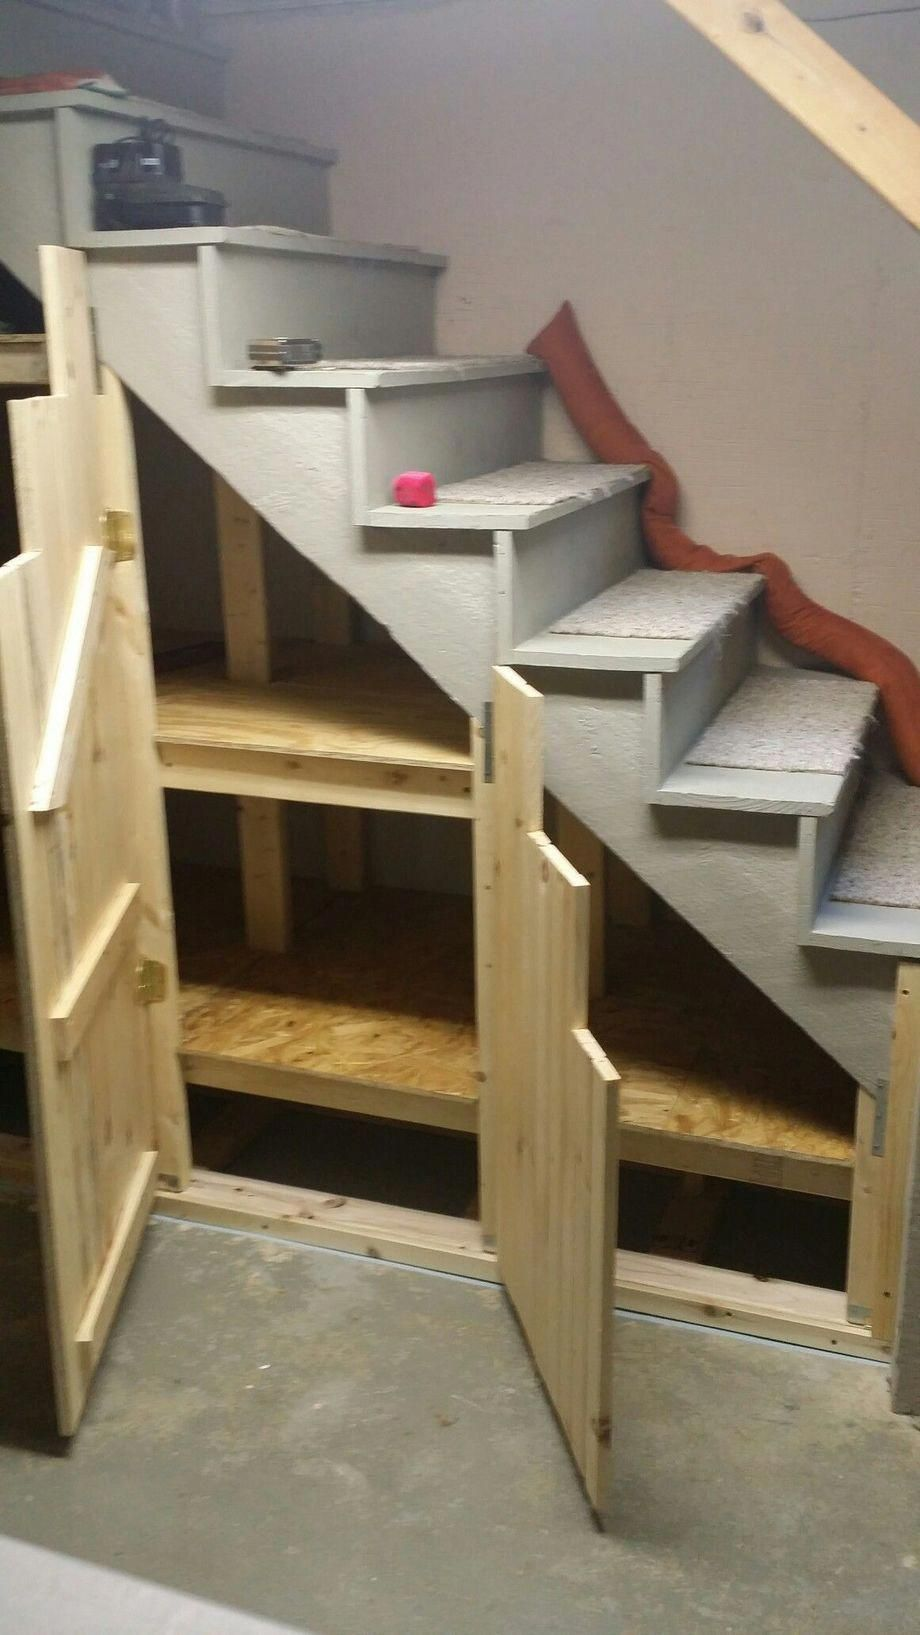 Awesome Cool Ideas To Make Storage Under Stairs 1 In 2019 Basement Flooring Basement